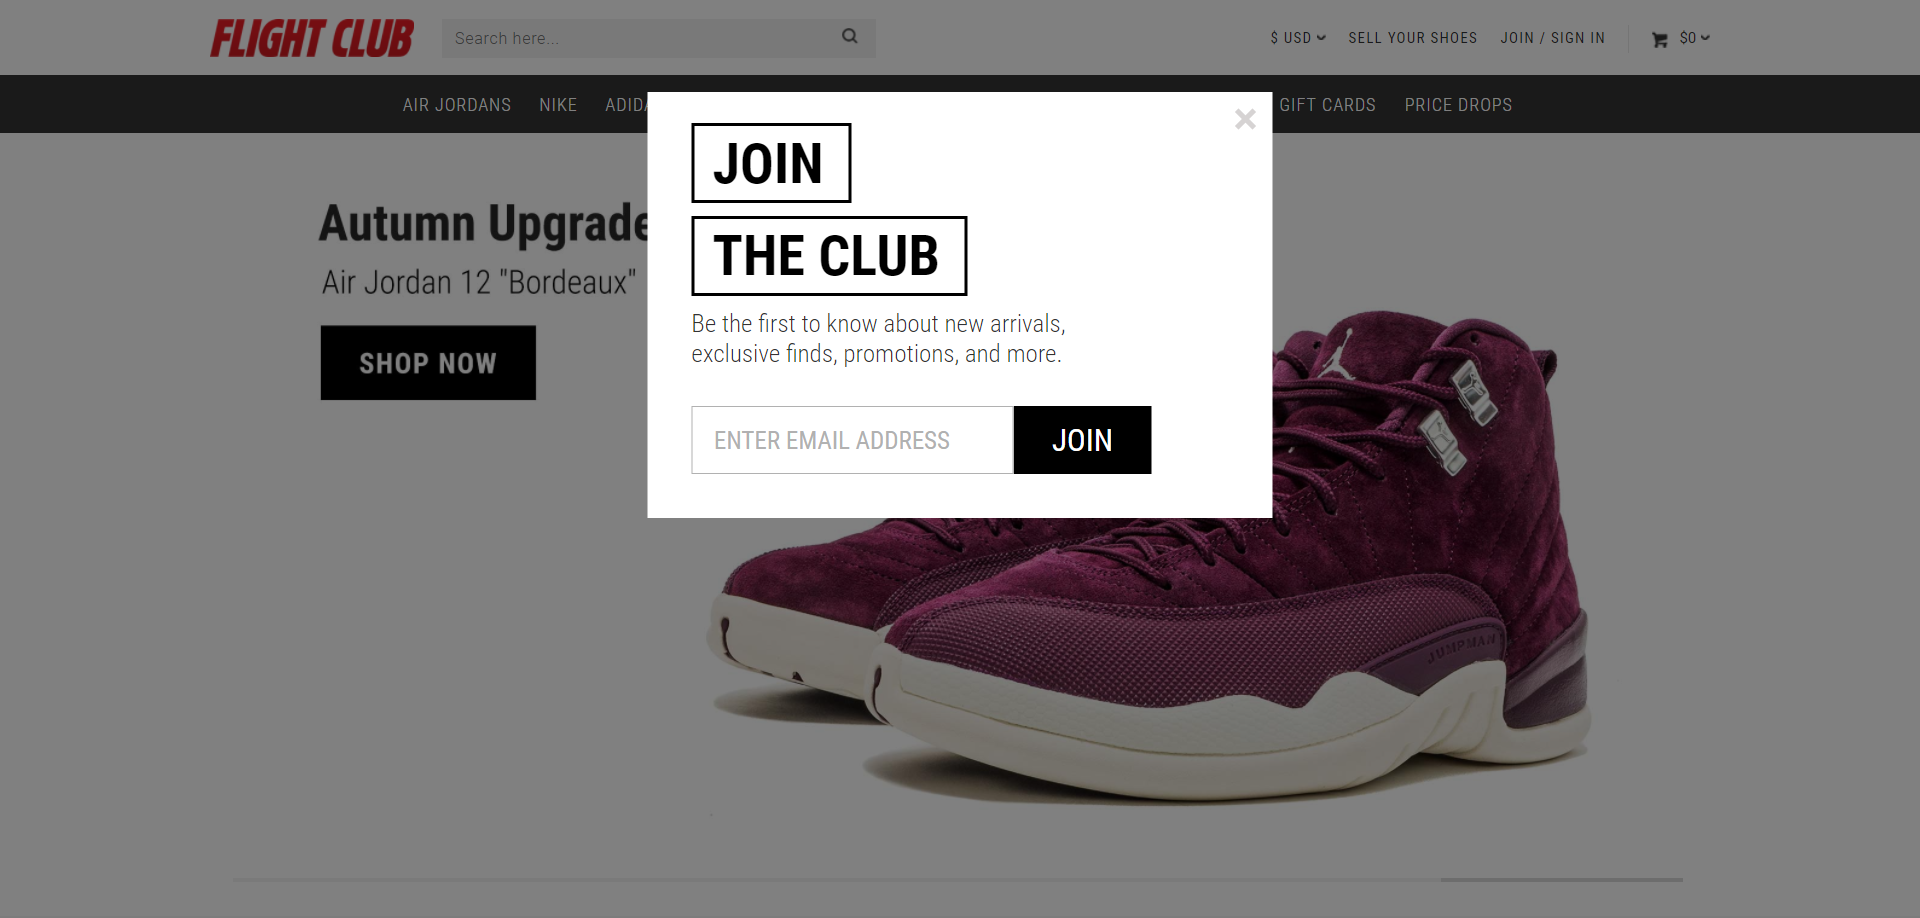 fight club opt-in popup